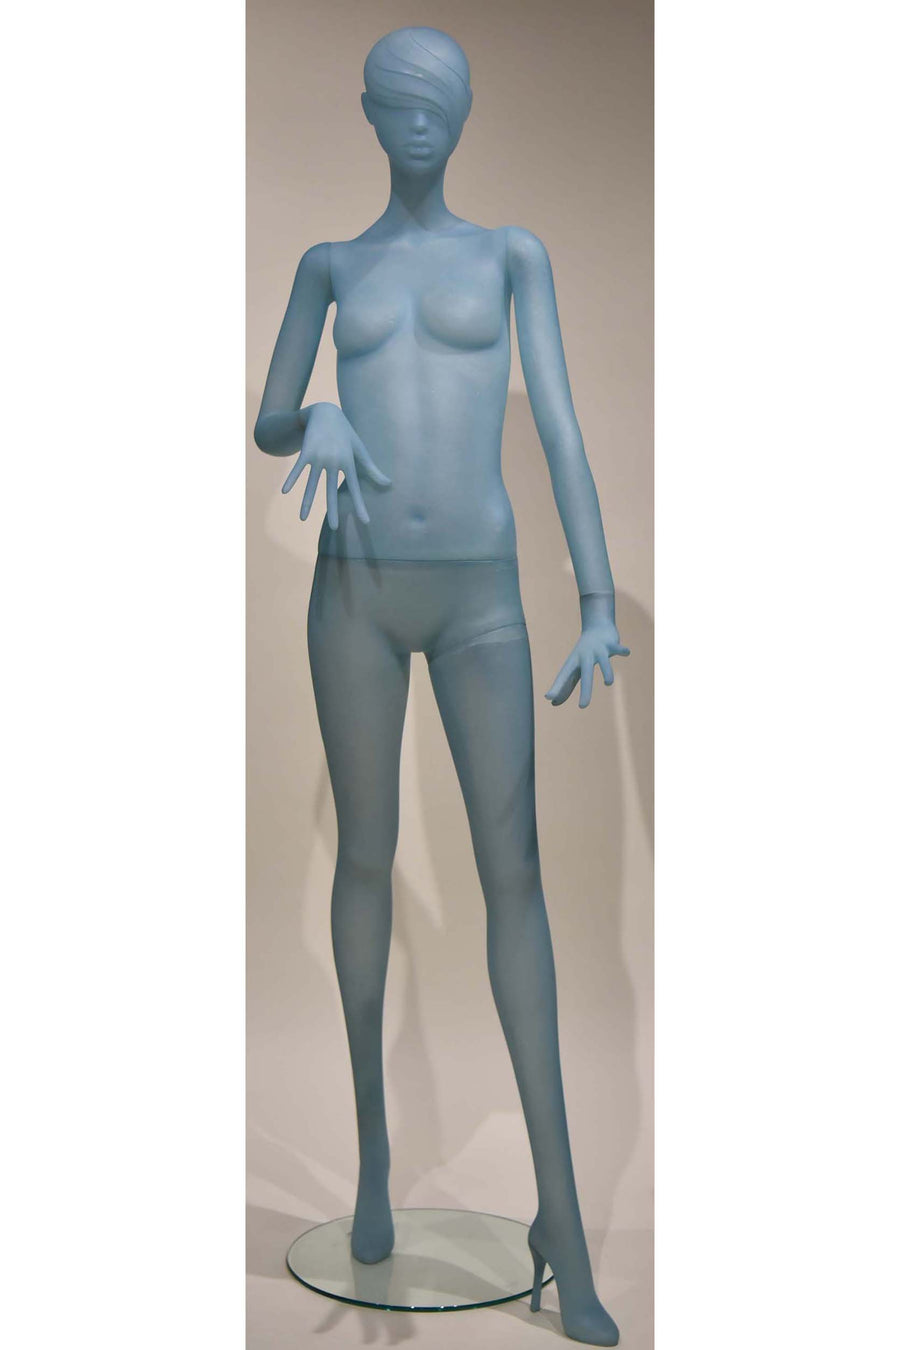 frosted blue female mannequin with left arm straight and right arm bent